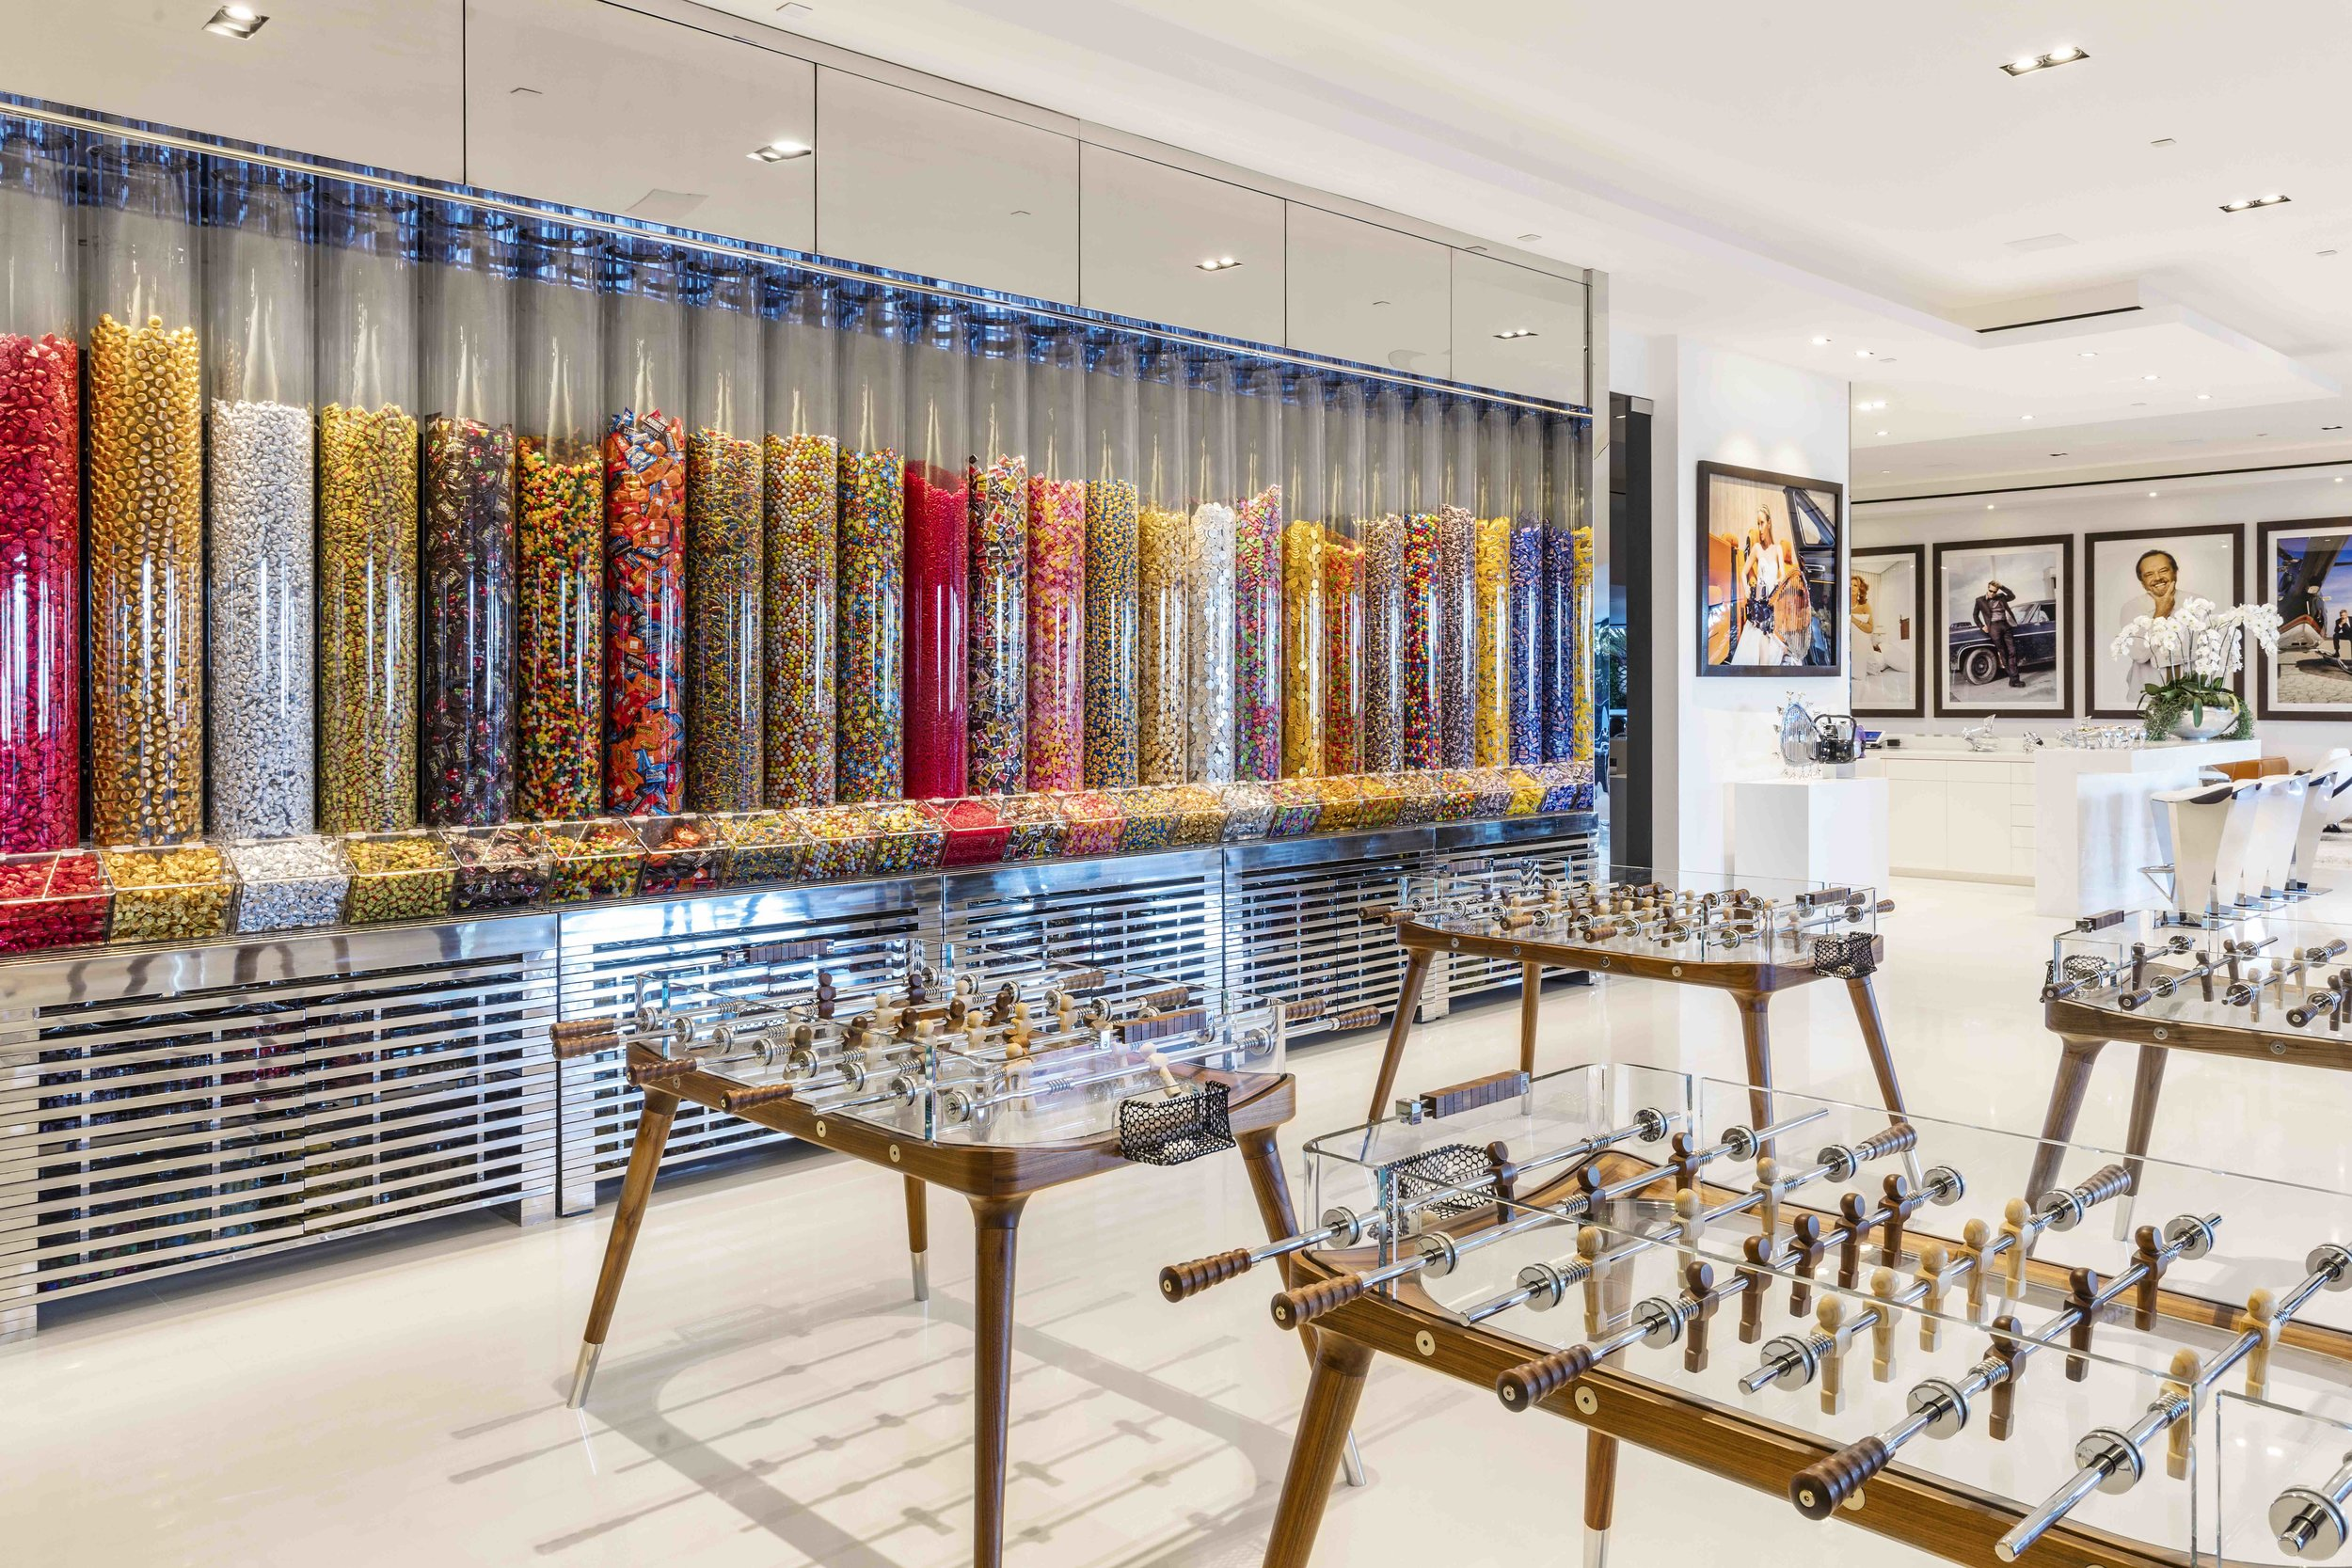 The ground floor includes custom glass ping pong and foosball tables, as well as a wall-mounted candy dispenser